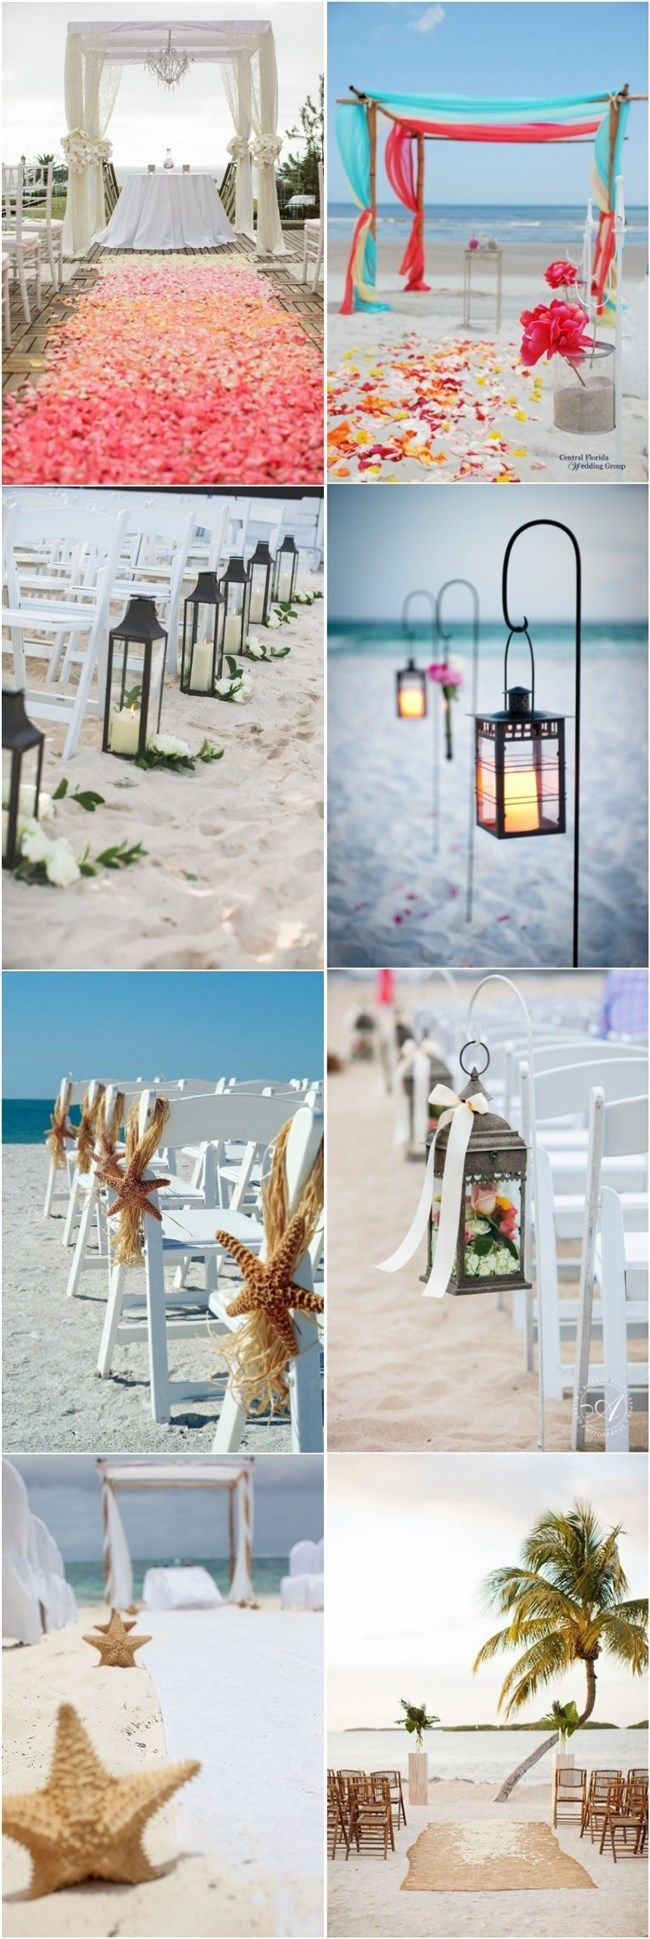 Best 25+ Beach Wedding Decorations Ideas On Pinterest | Starfish Wedding  Decorations, Beach Table Centerpieces And Diy Summer Weddings